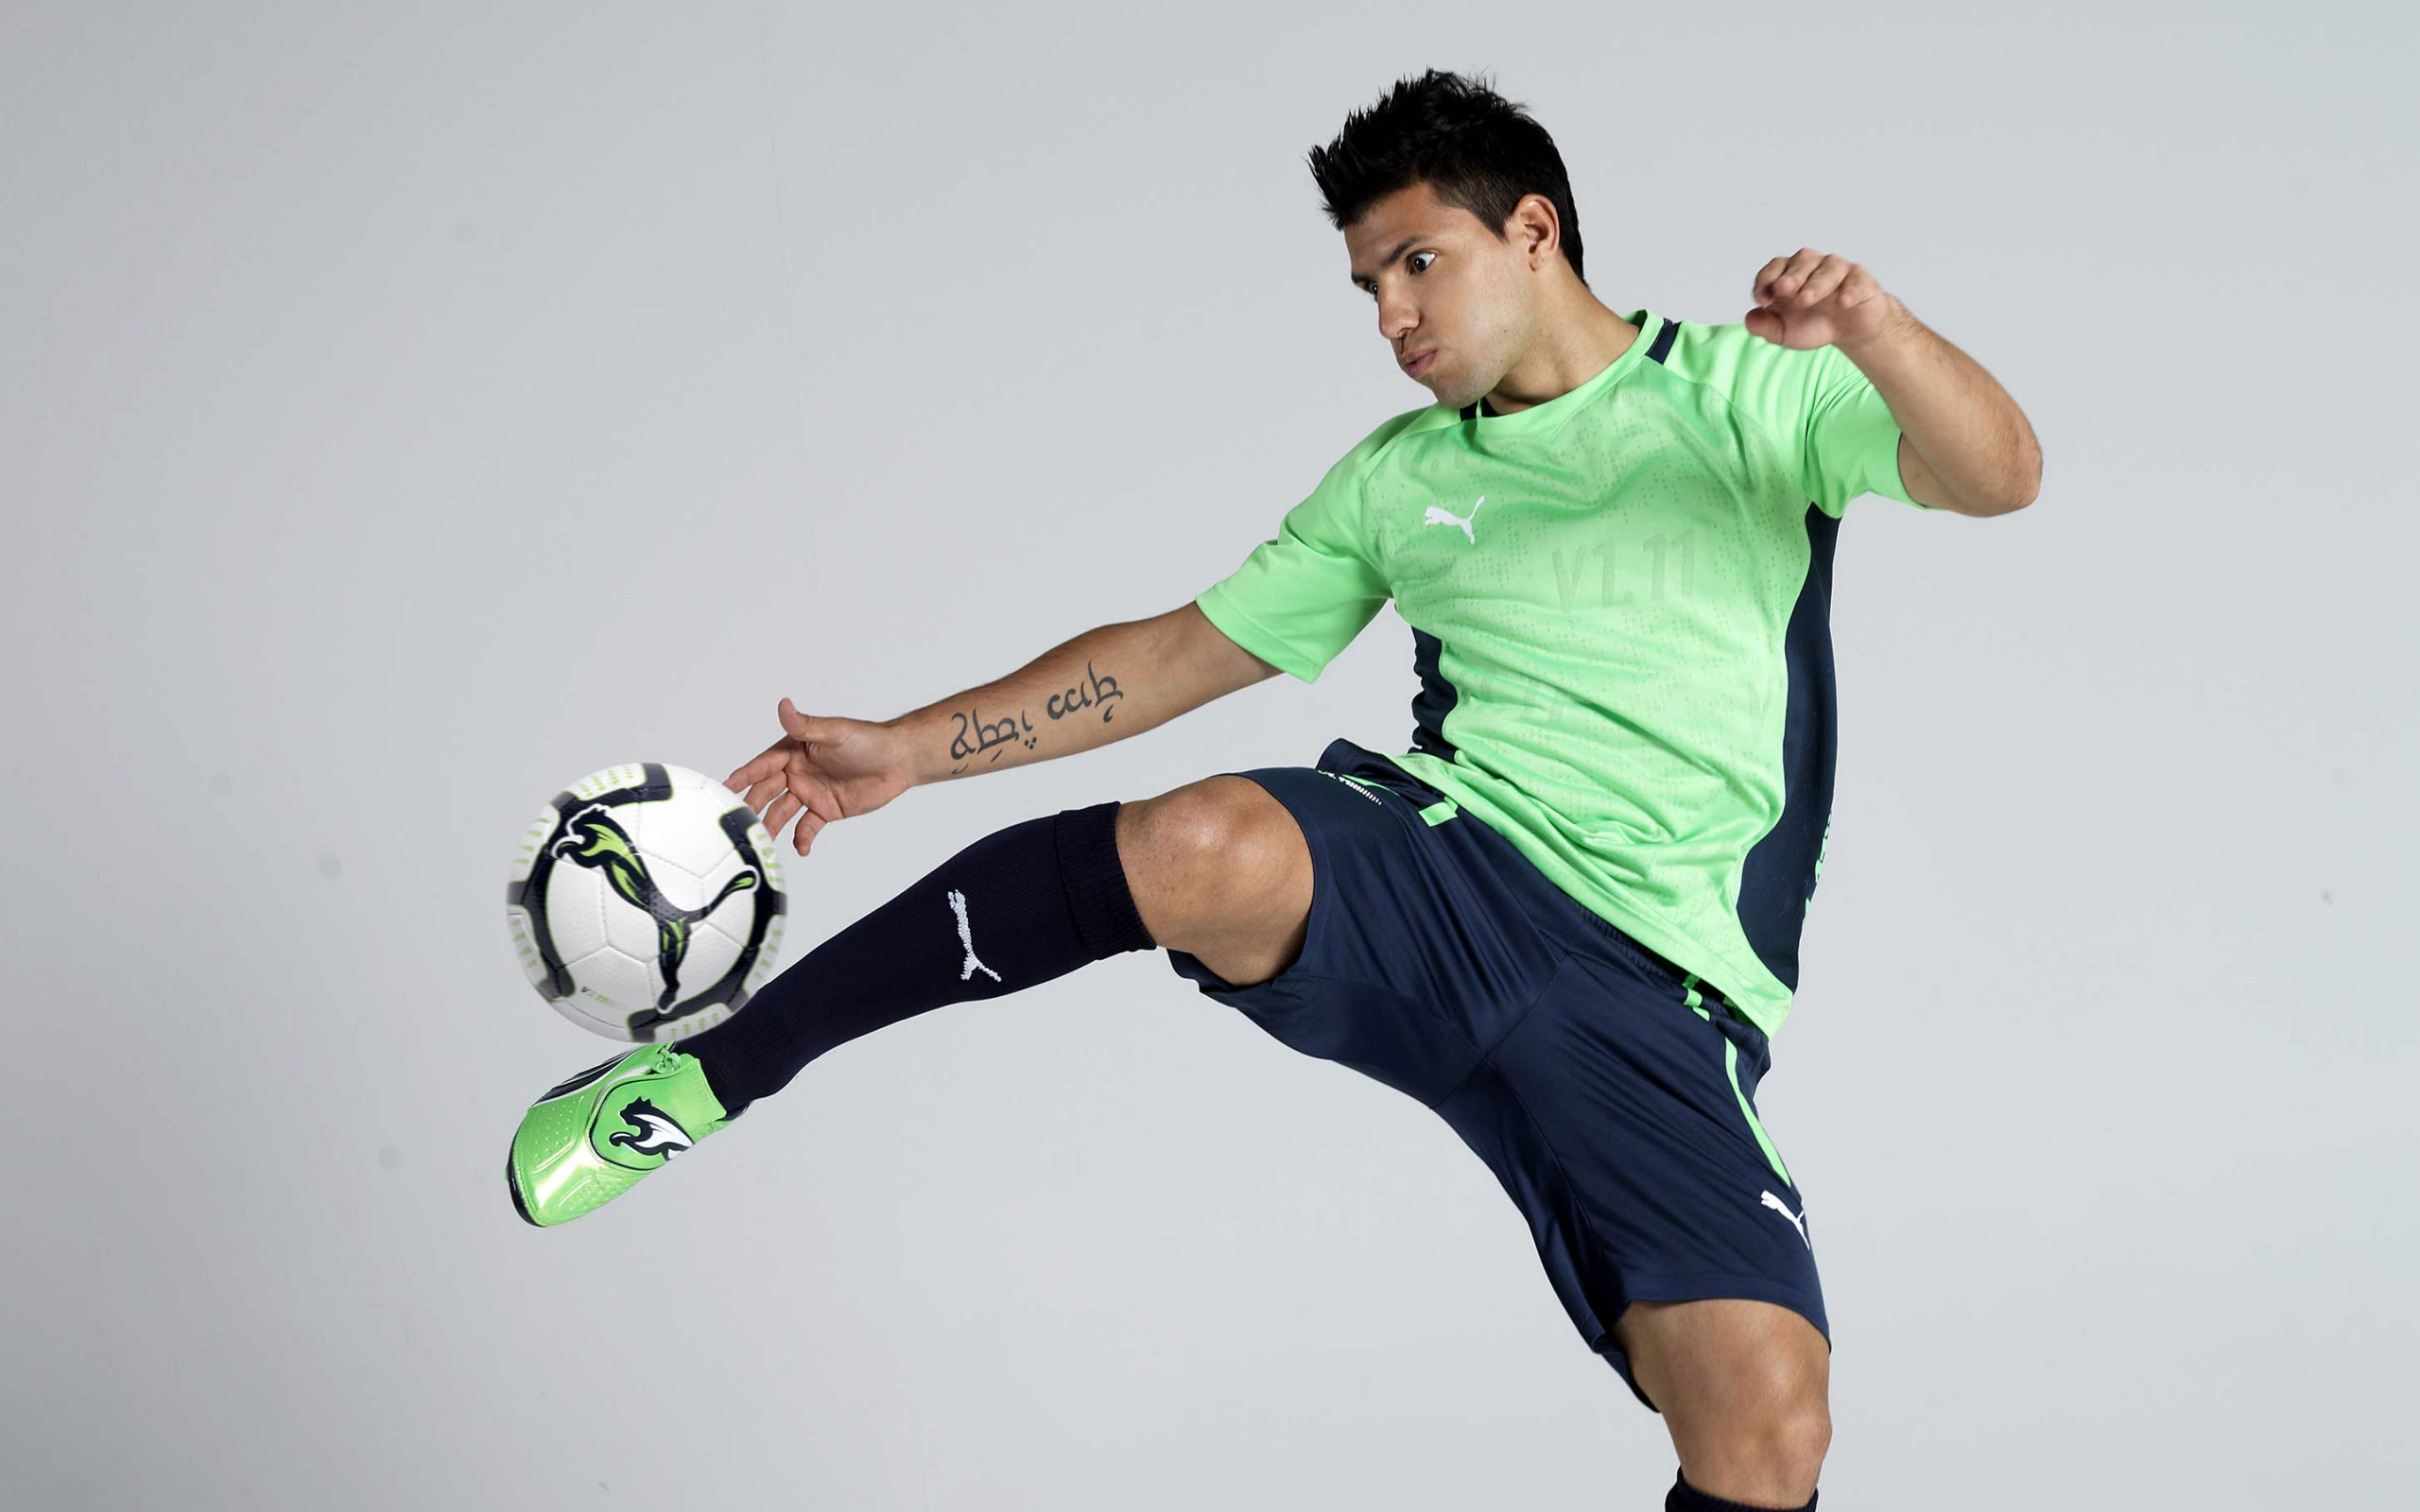 Sergio Aguero Soccer Player Wallpapers In Jpg Format For Free Download